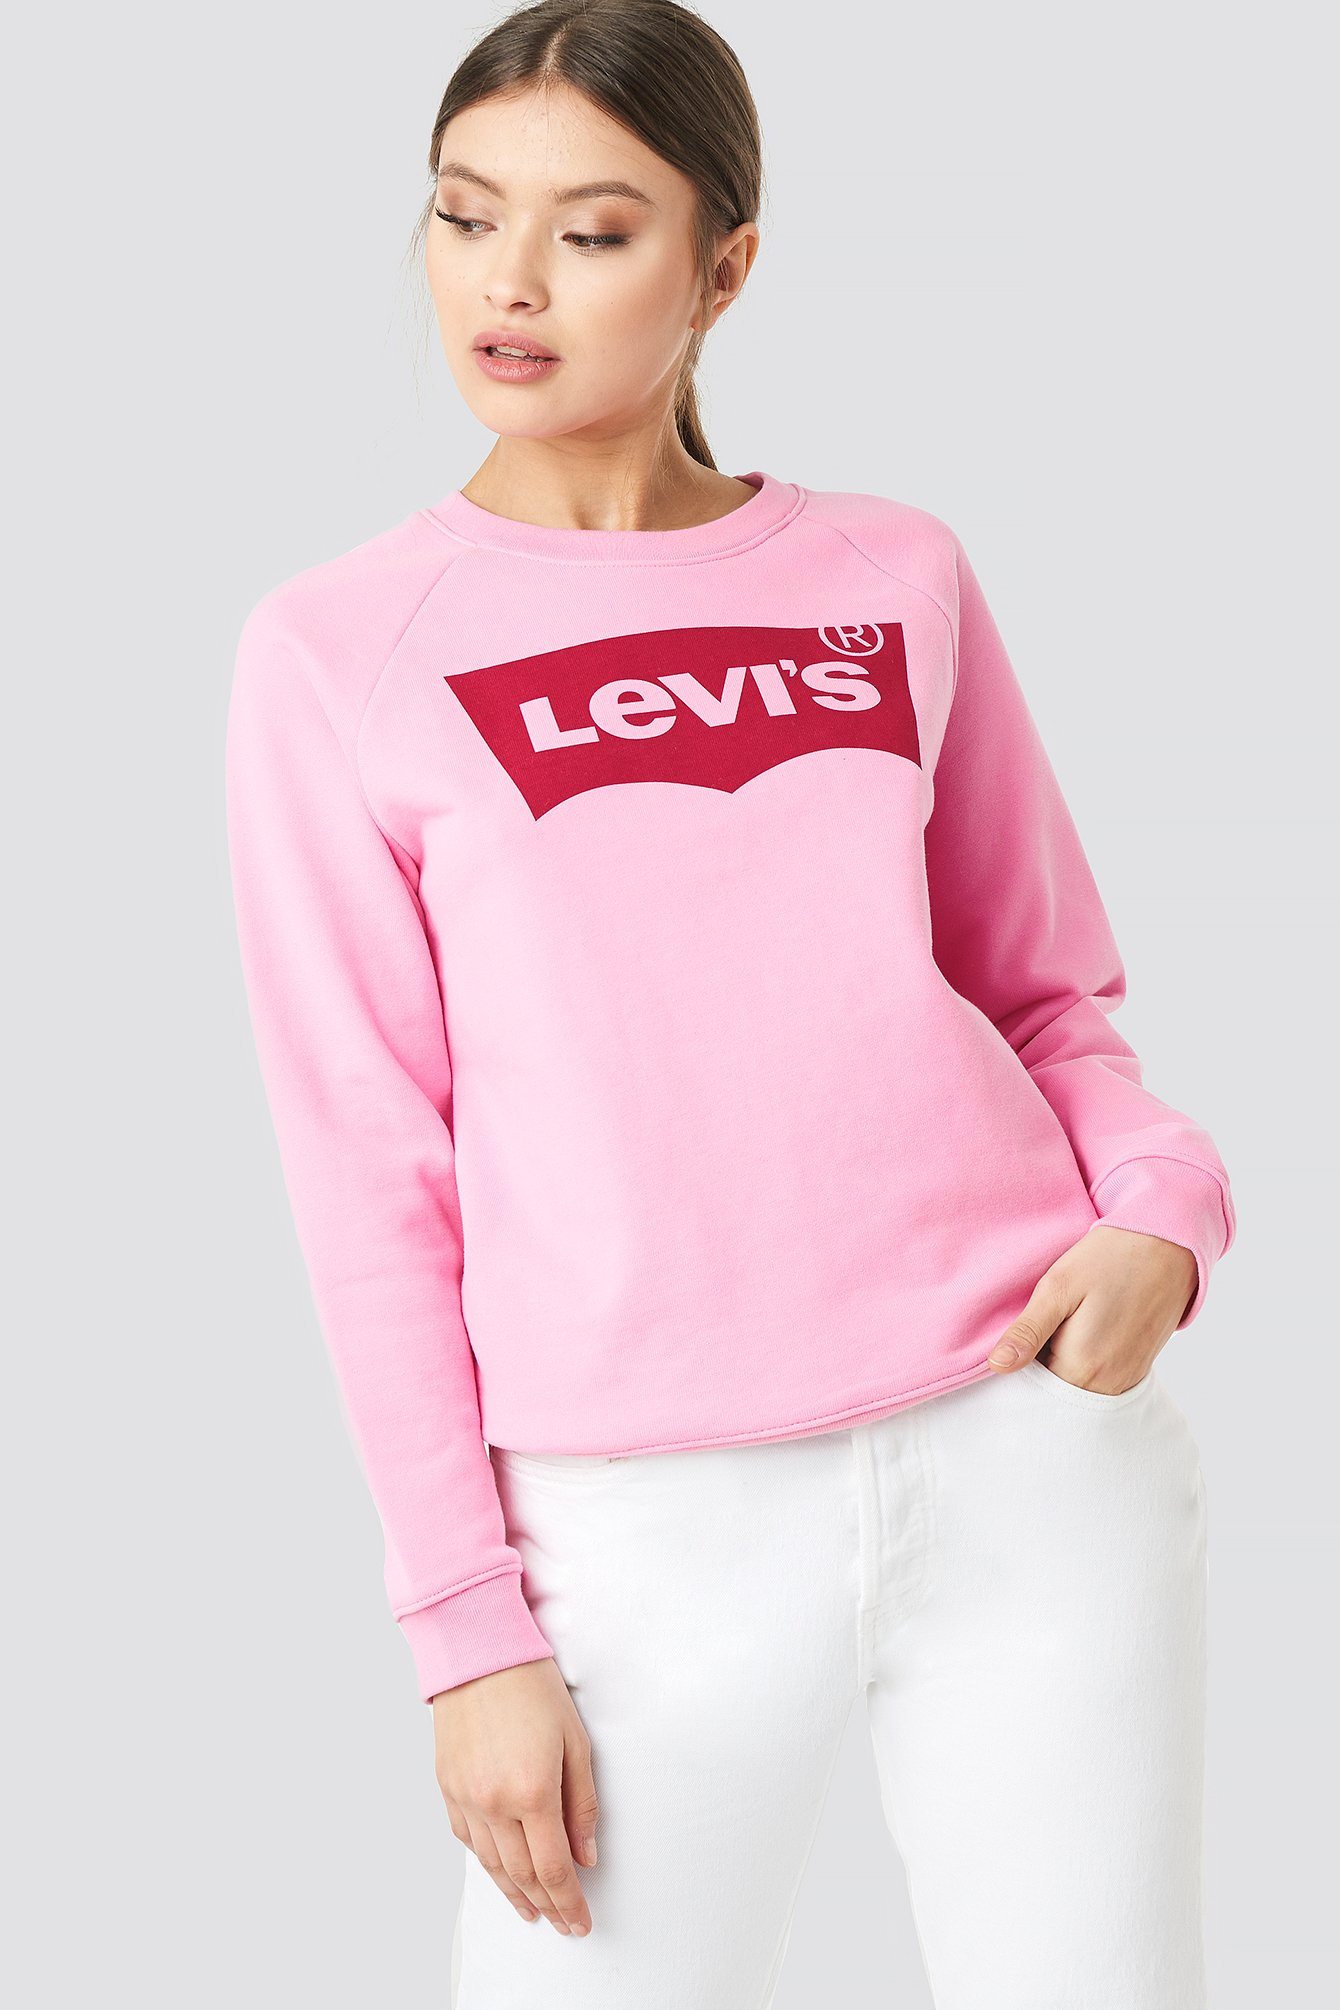 levi's -  Relaxed Graphic Grew Hsmk Sweater - Pink